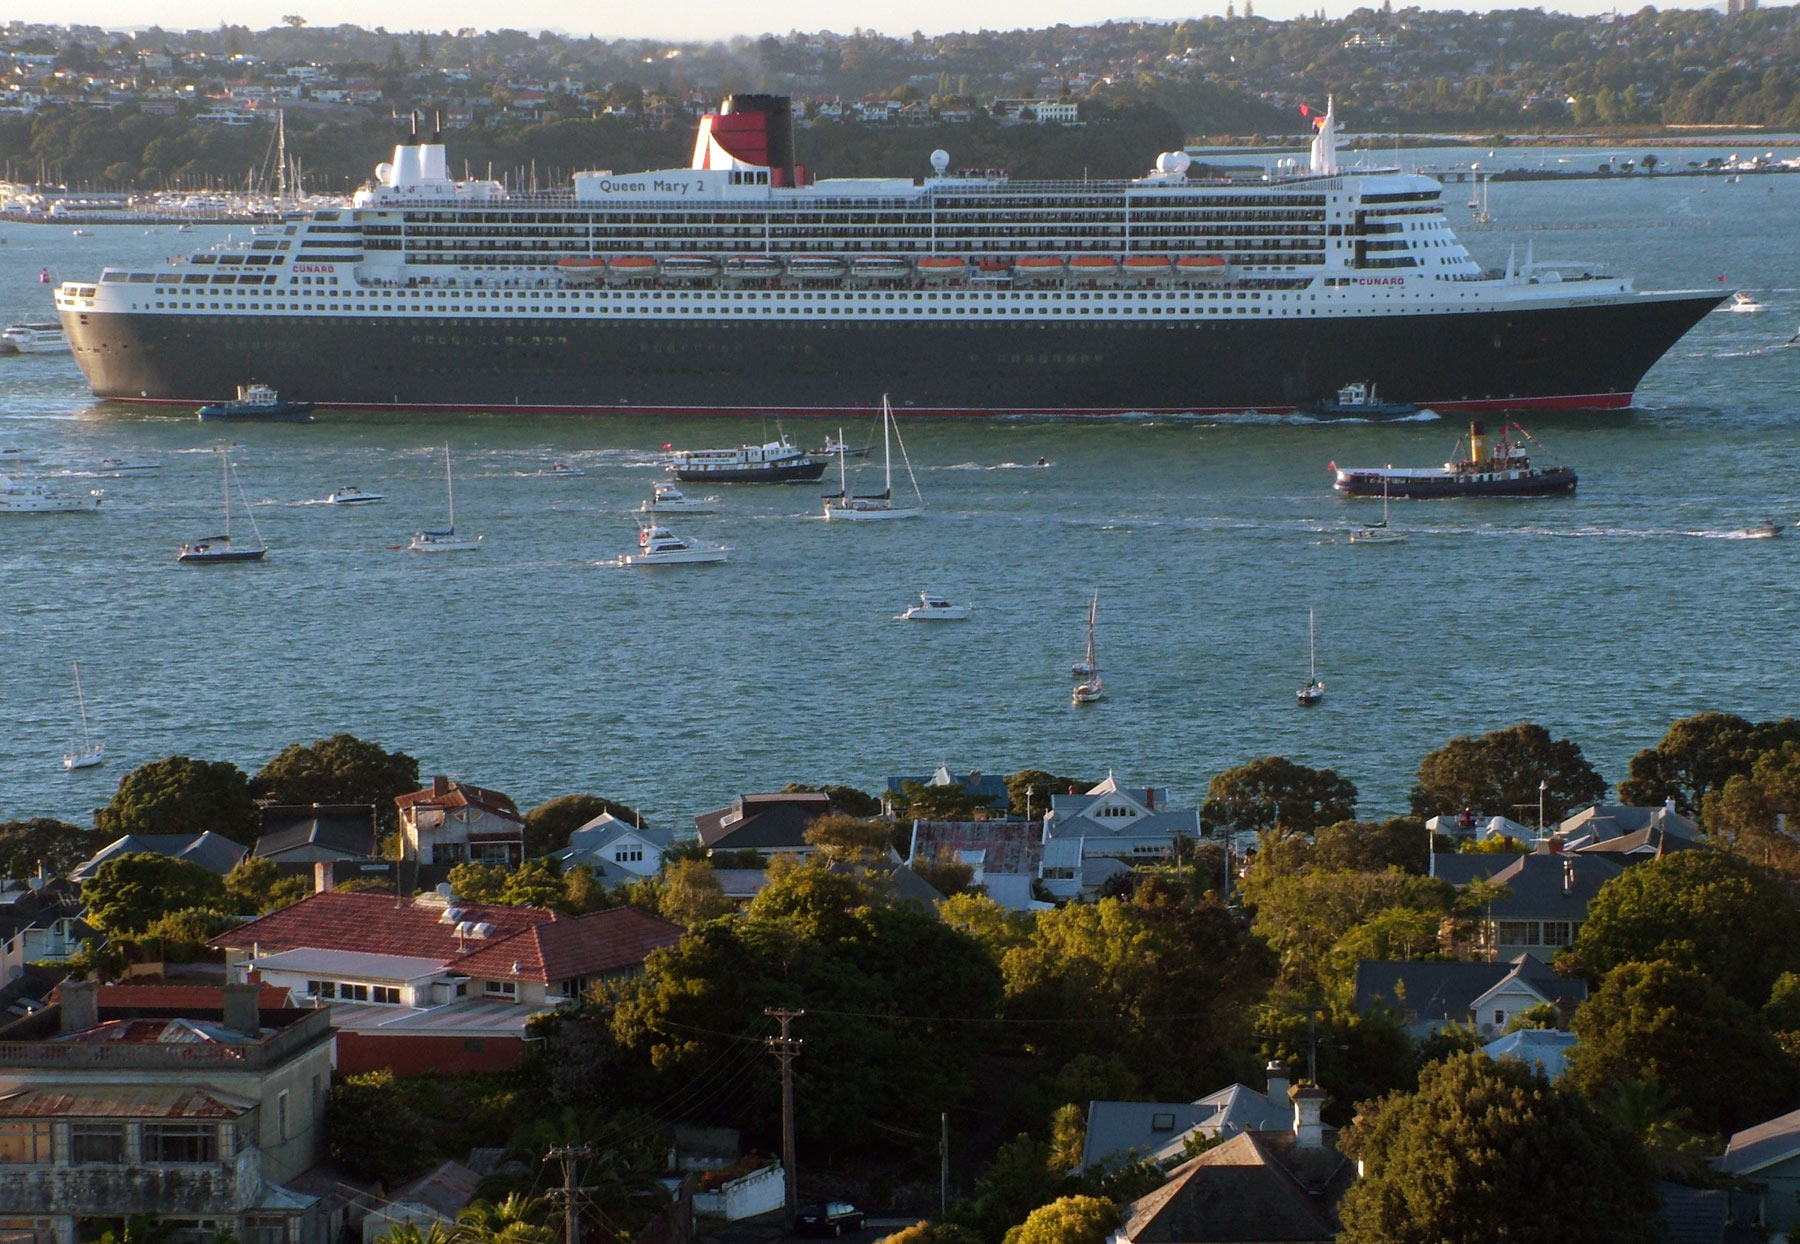 Queen Mary 2, Auckland, Boat, Boats, Cruiser, HQ Photo